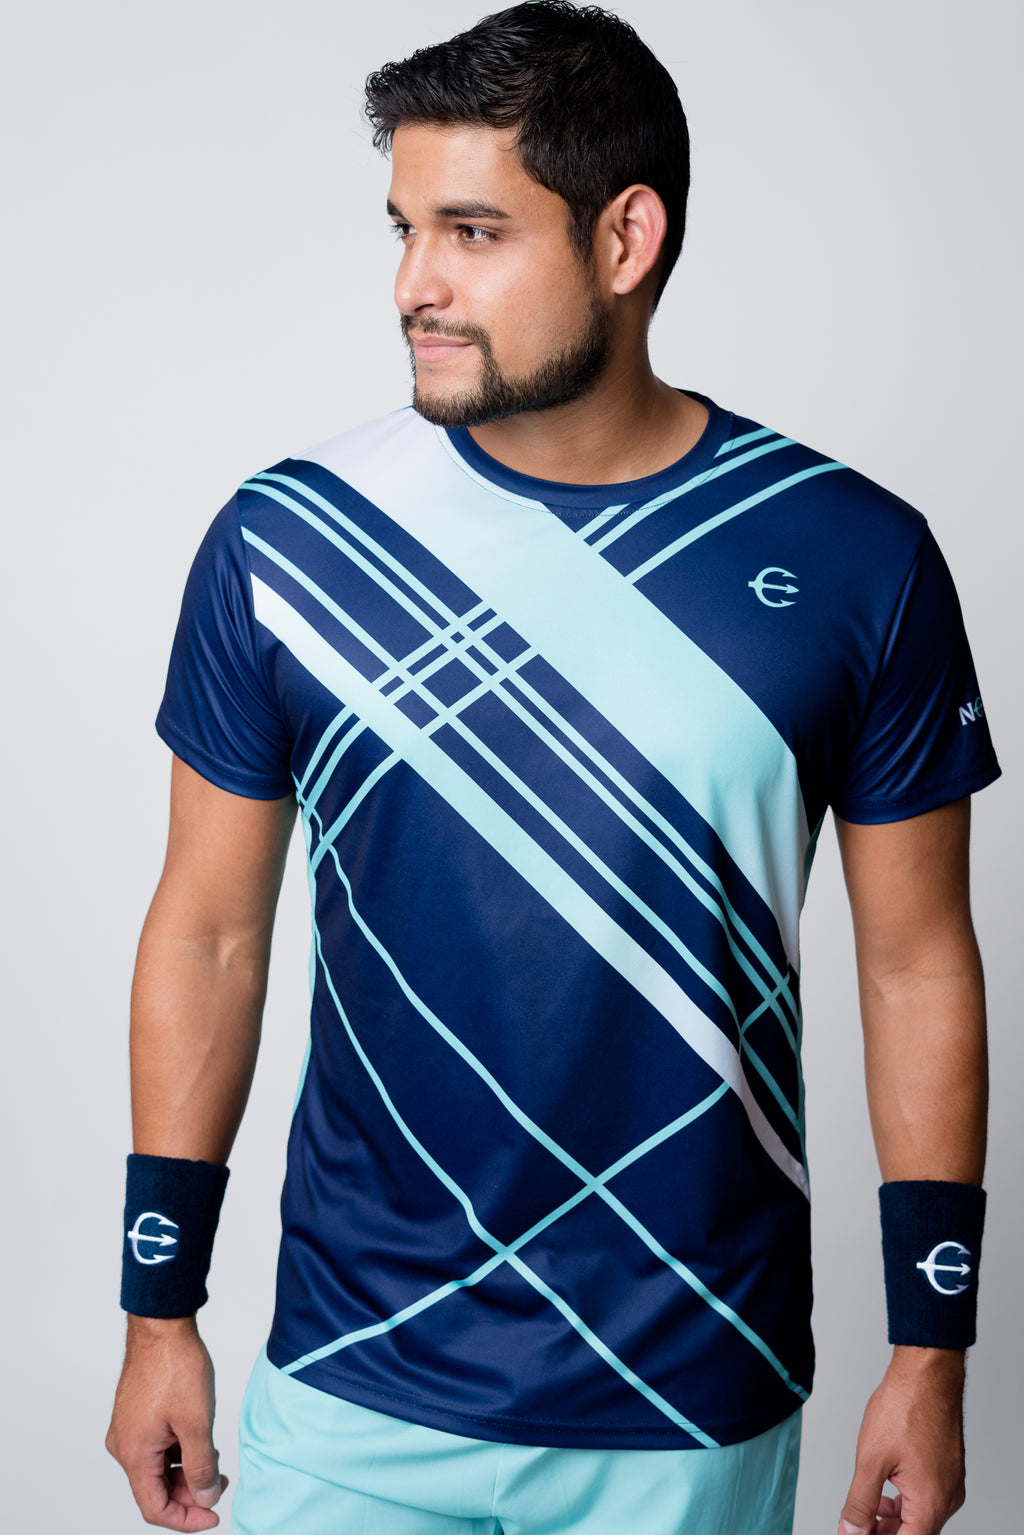 Navy with mint and white stripes neptune athletics competition tee